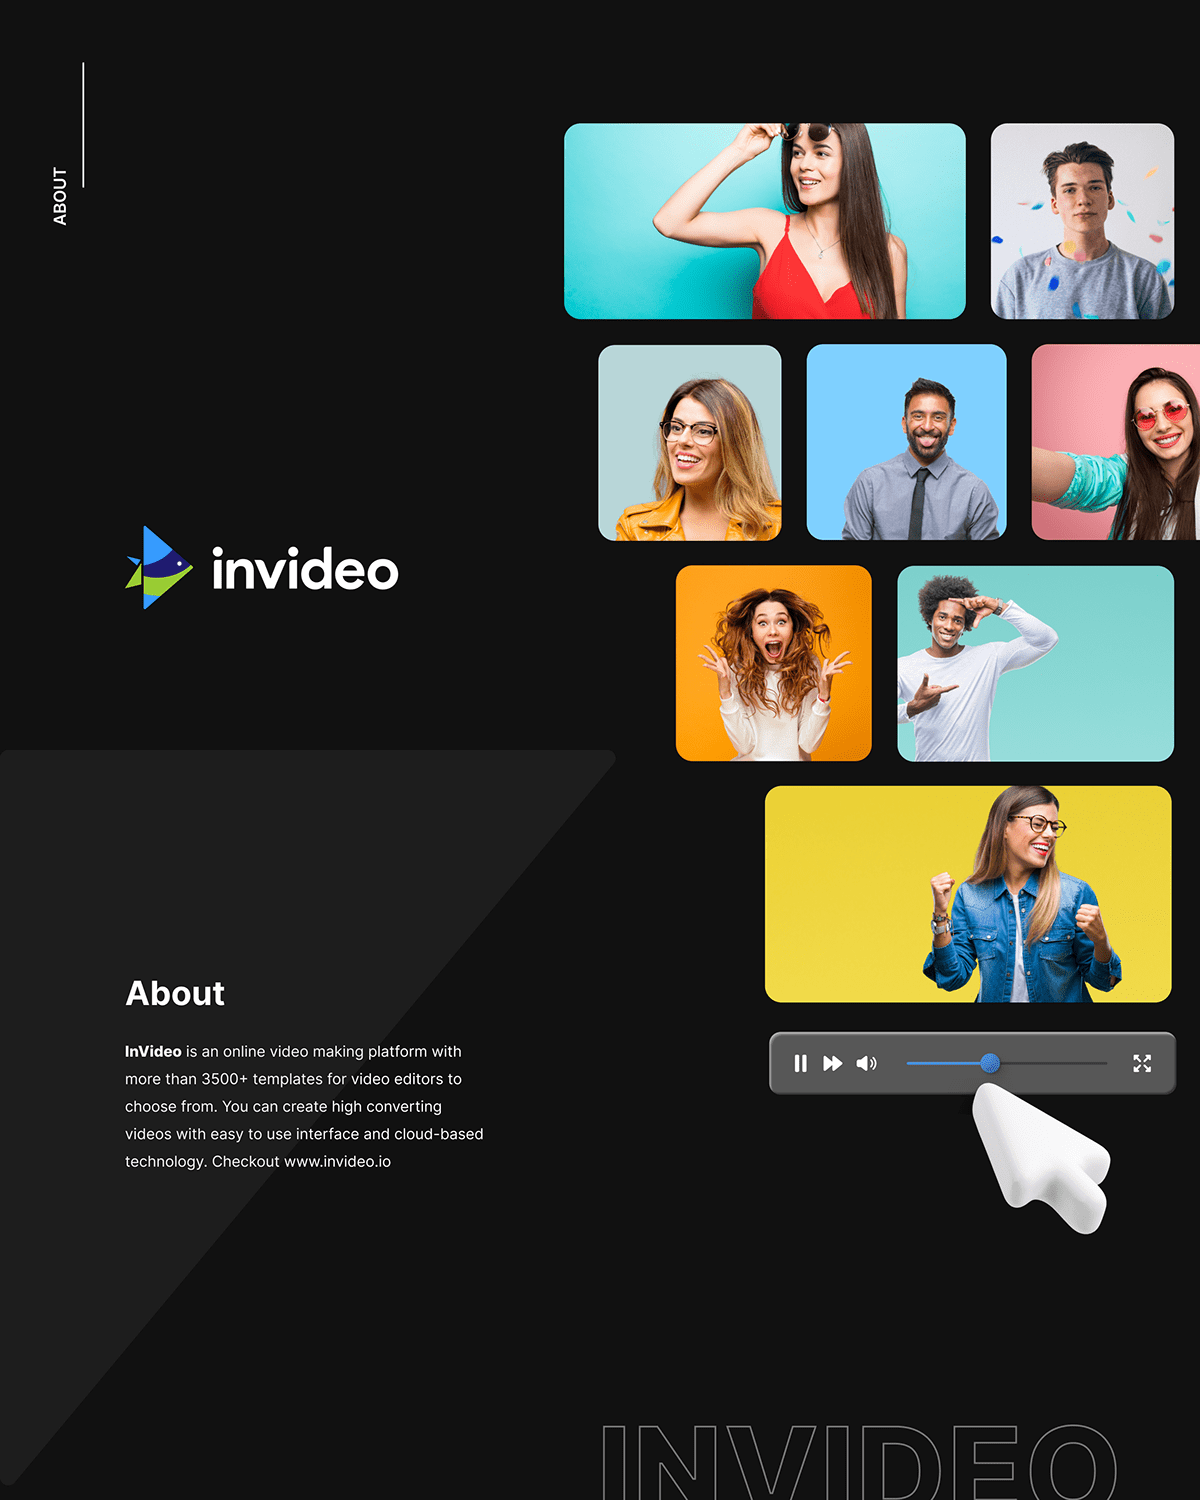 About InVideo